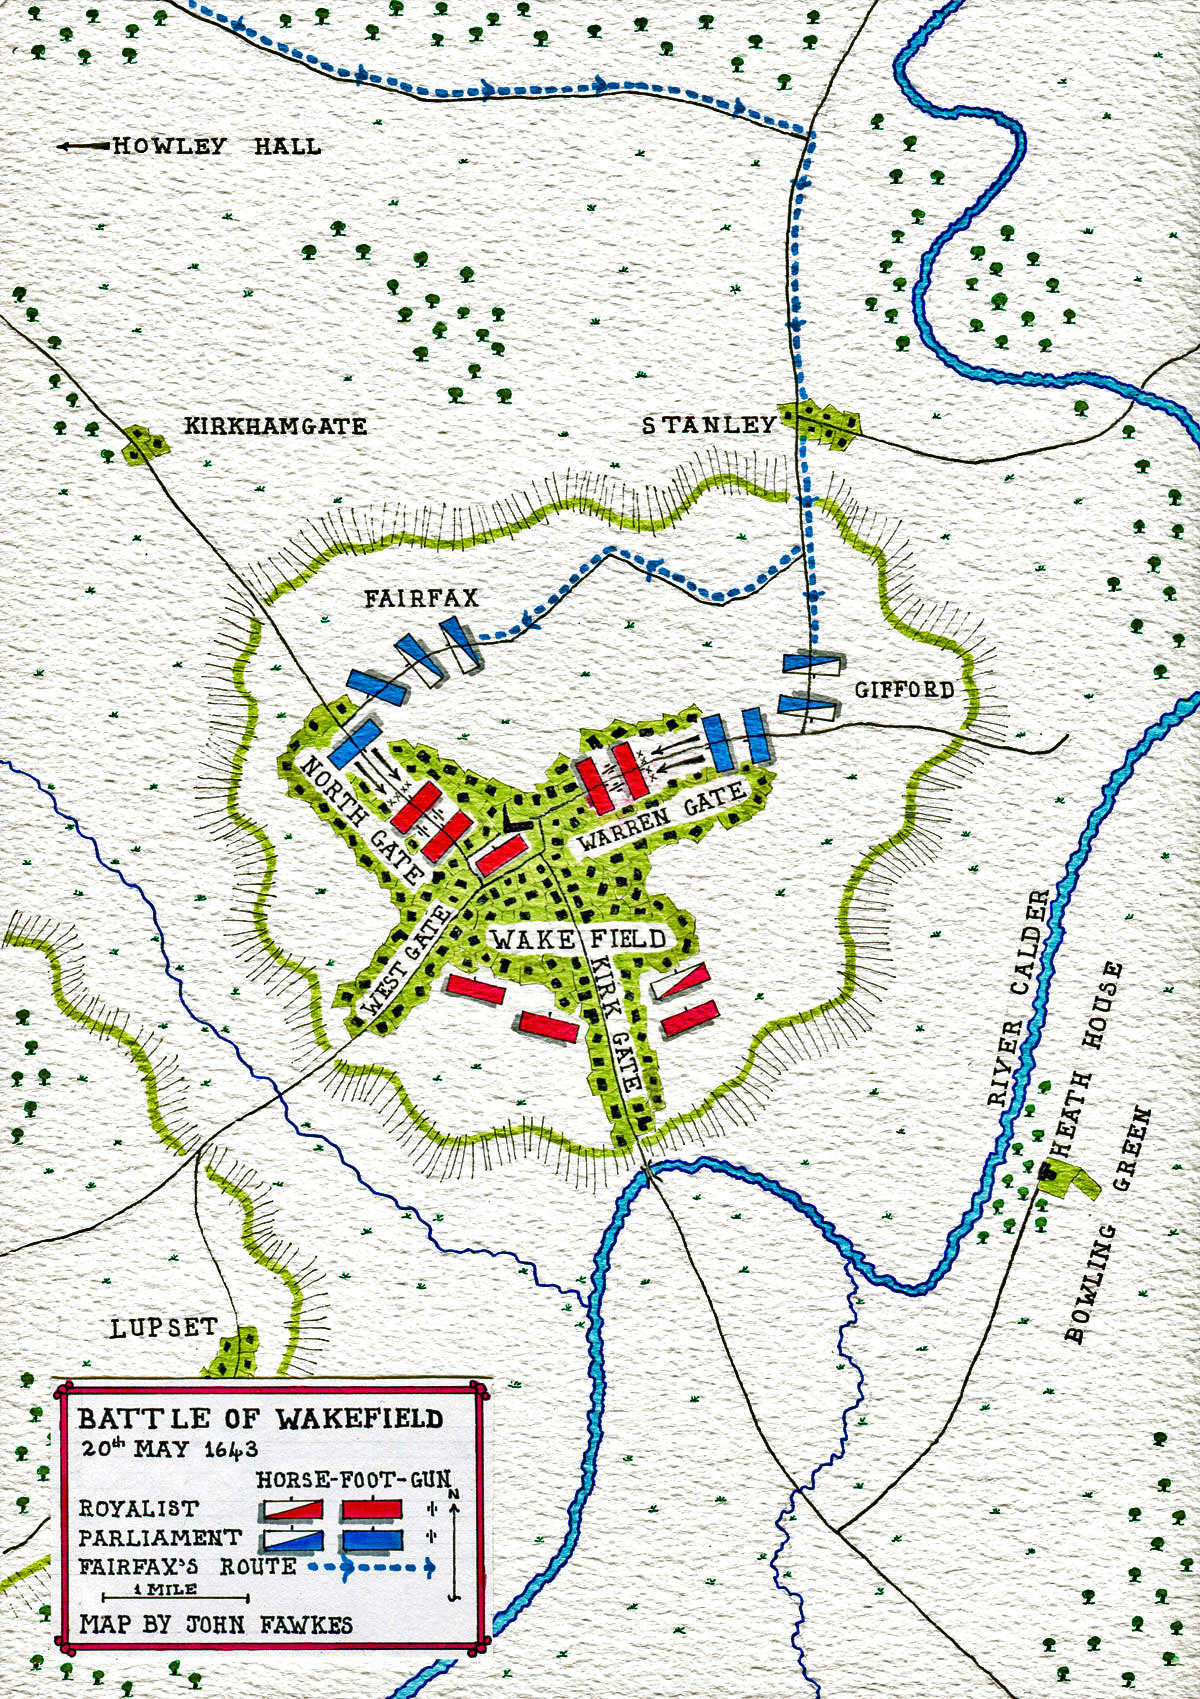 Battle Of Wakefield 20th May